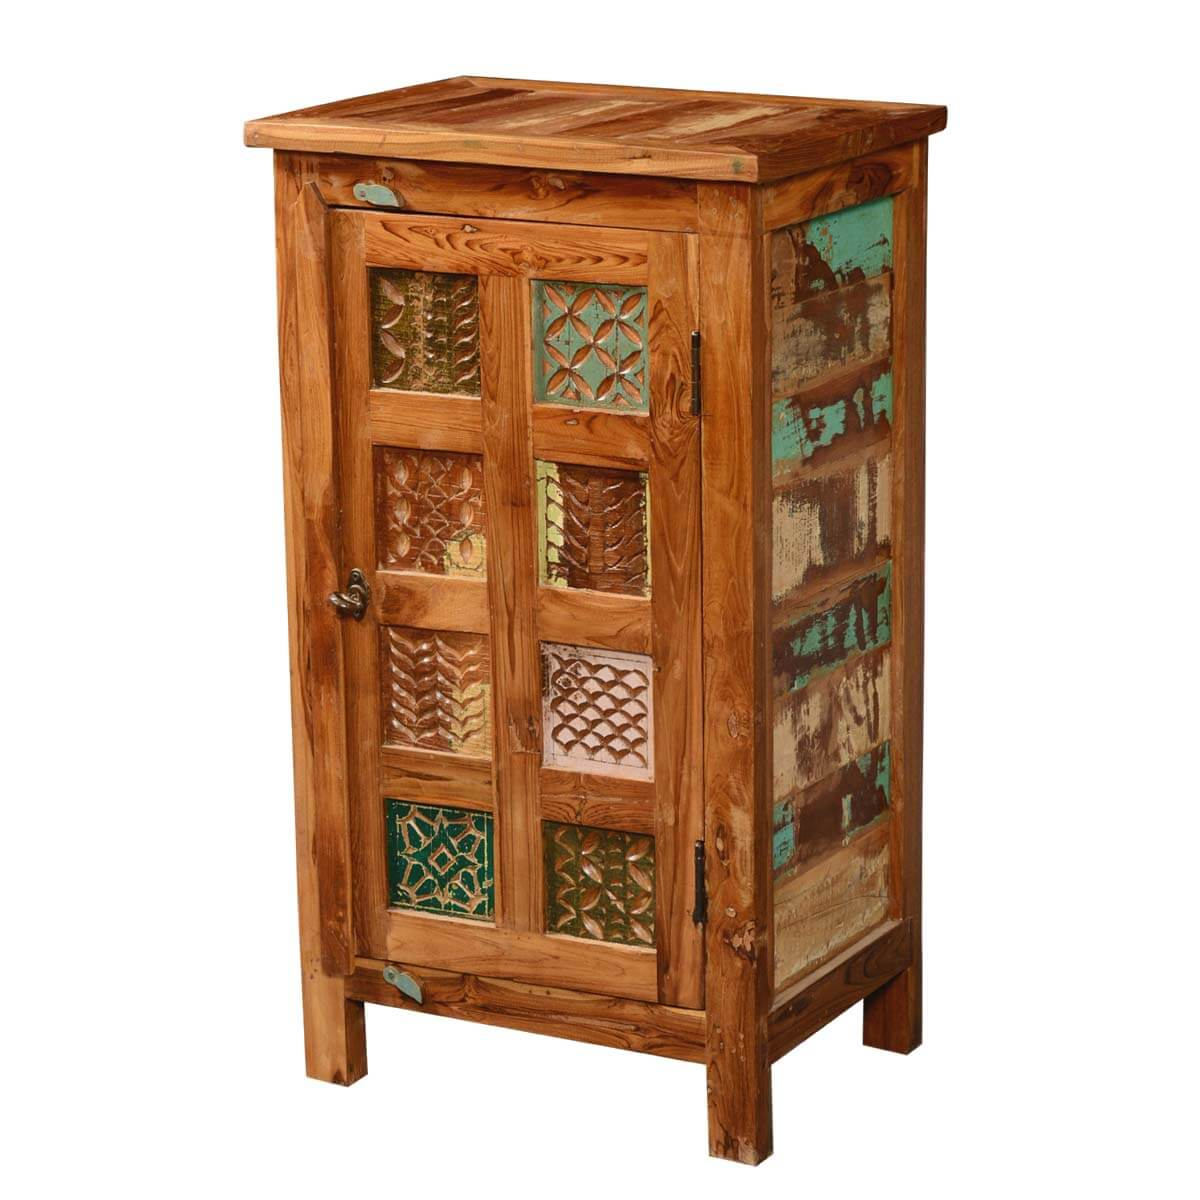 Salvaged Kitchen Cabinets For Sale: Appalachian Patch Quilt Reclaimed Wood Kitchen Cupboard